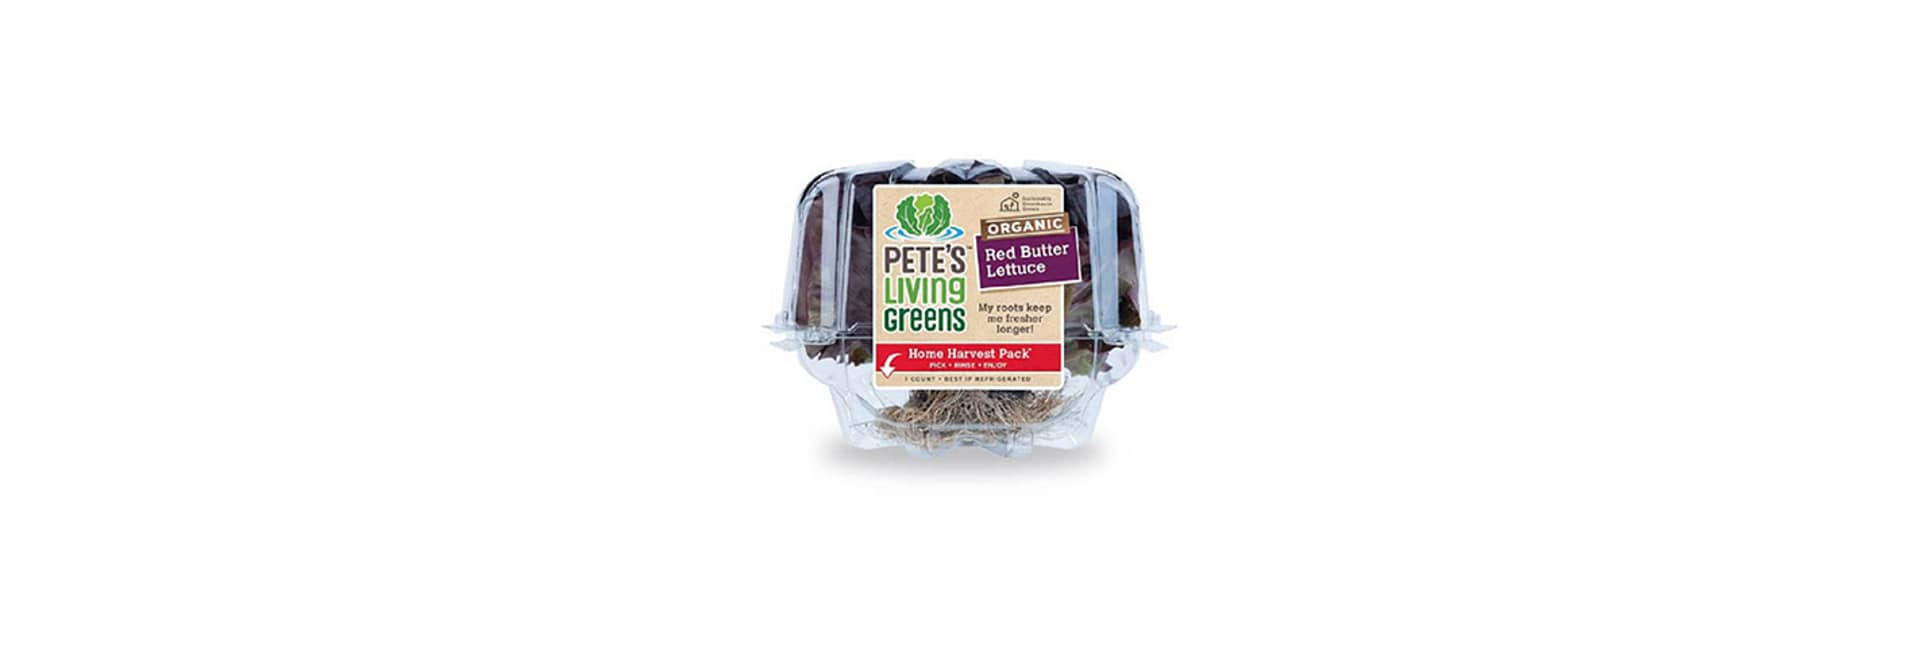 Pete's adds organic red butter lettuce, spring mix